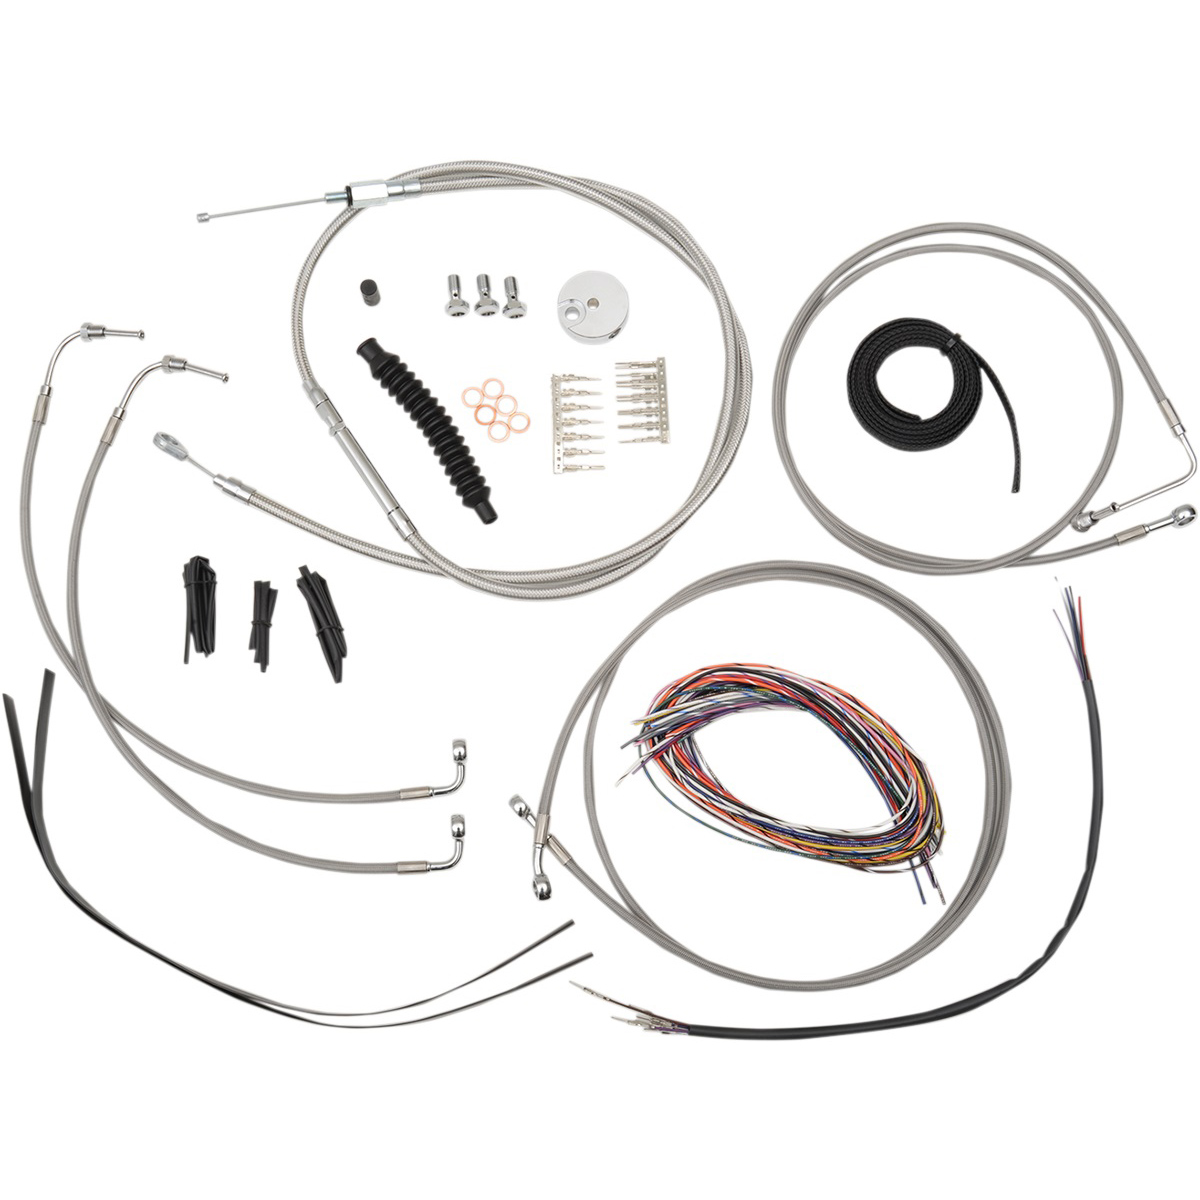 La Choppers Stainless Complete Cable Line Wiring Handlebar Kit For 12 14 Bars On Models With